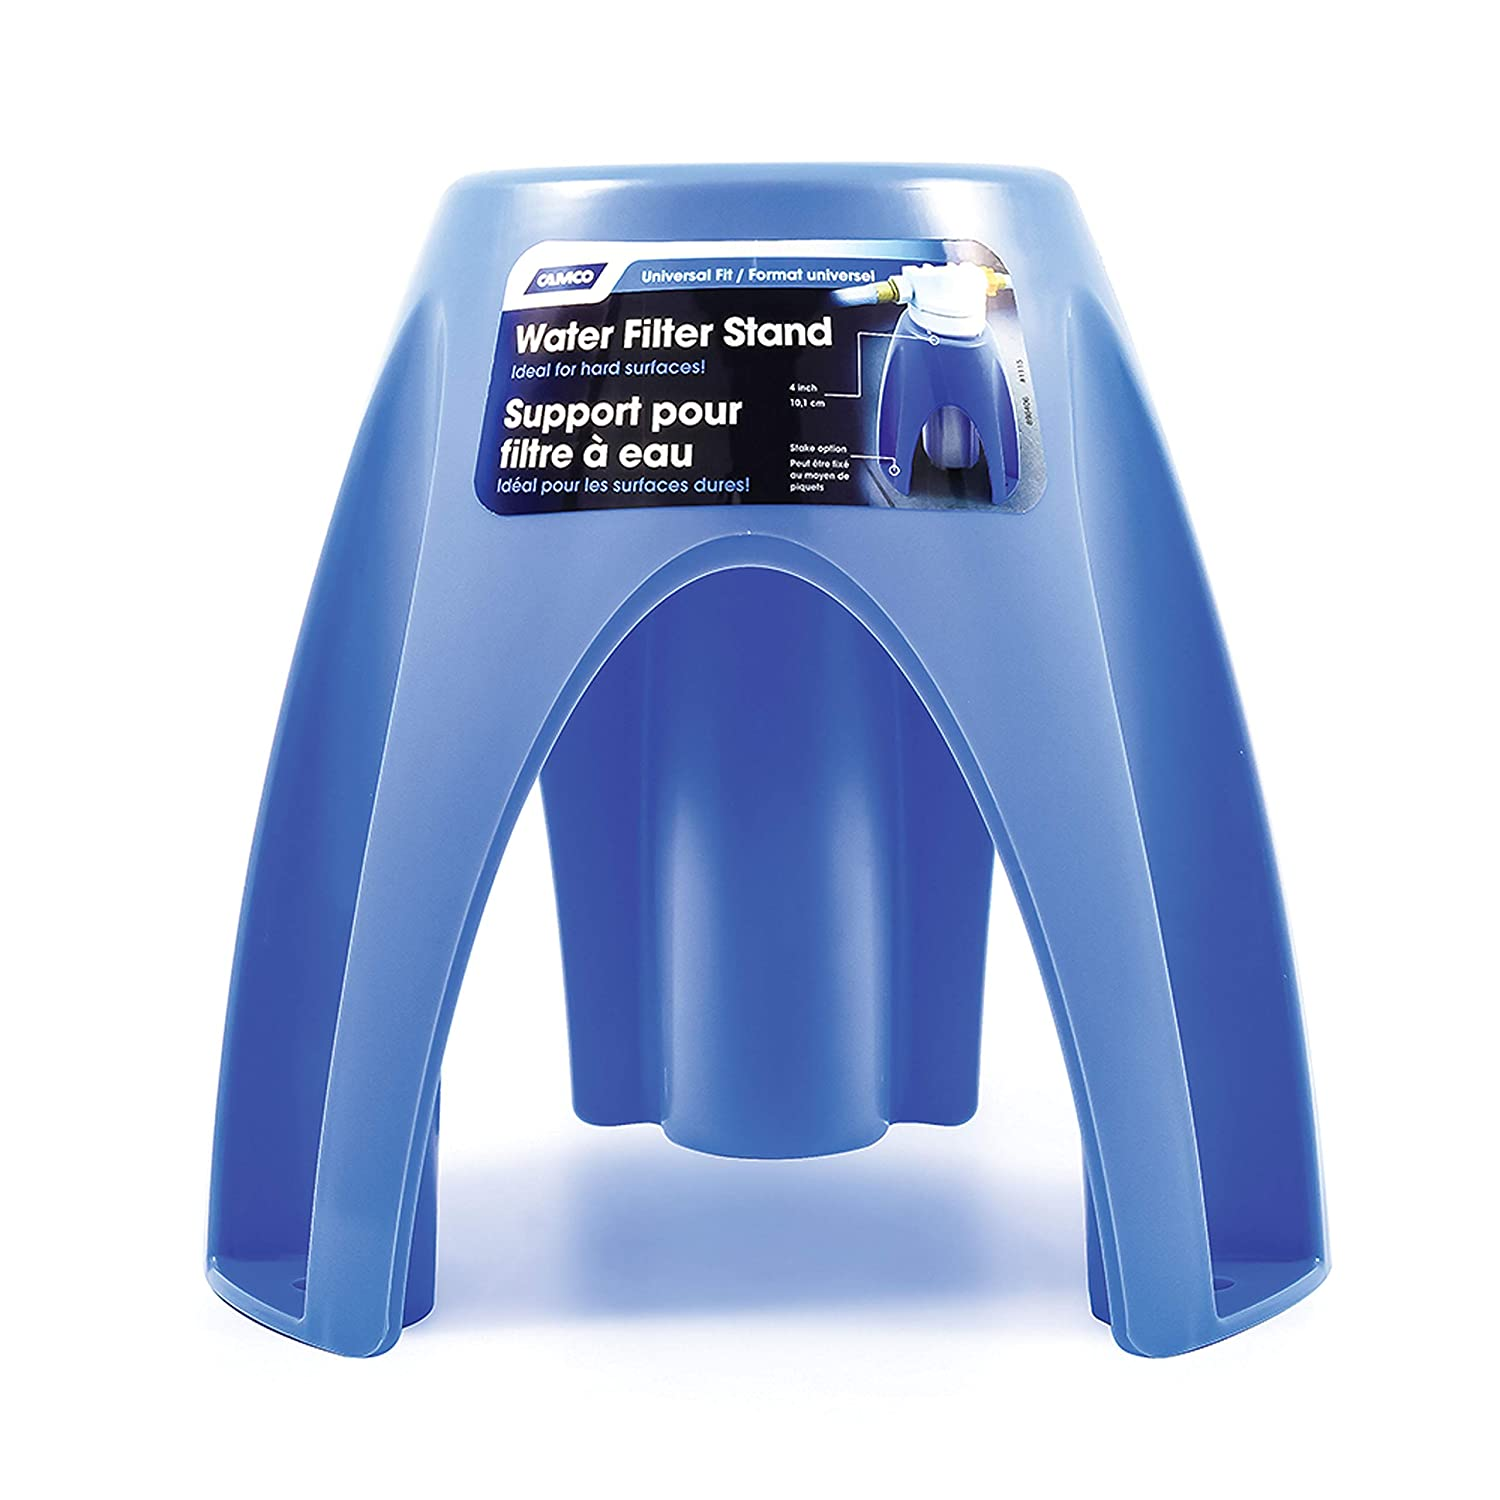 Camco Universal Fit Plastic Water Filter Stand- Supports Water Filter in Upright Position To Reduce Hose Kinking and Maximize Water Flow Rate, Fits 4-Inch Filters (40775)